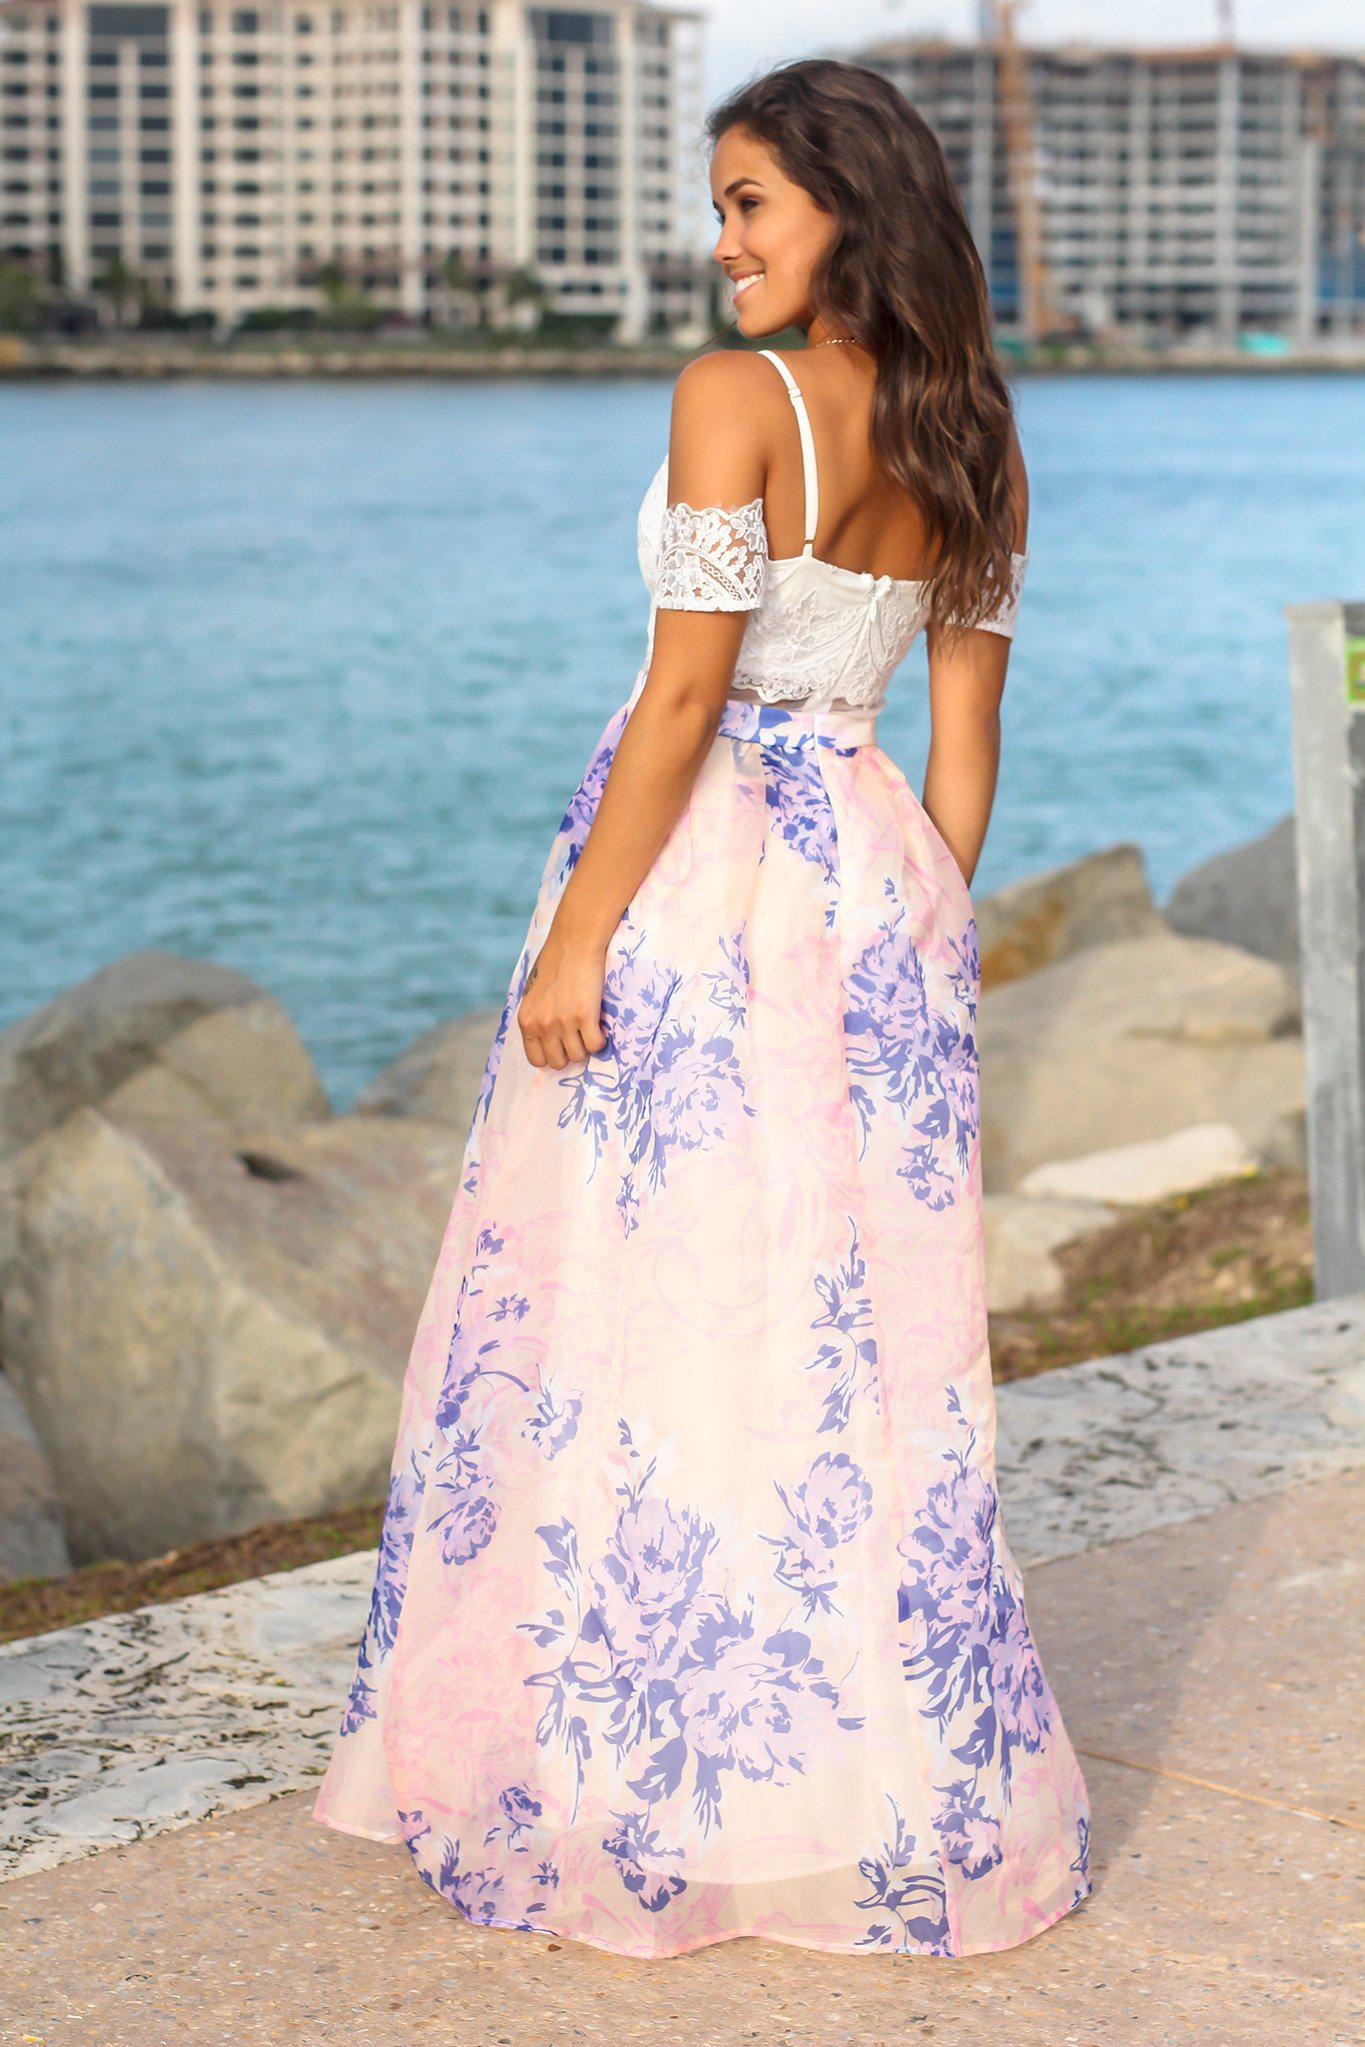 Ivory and Blue Floral Maxi Dress